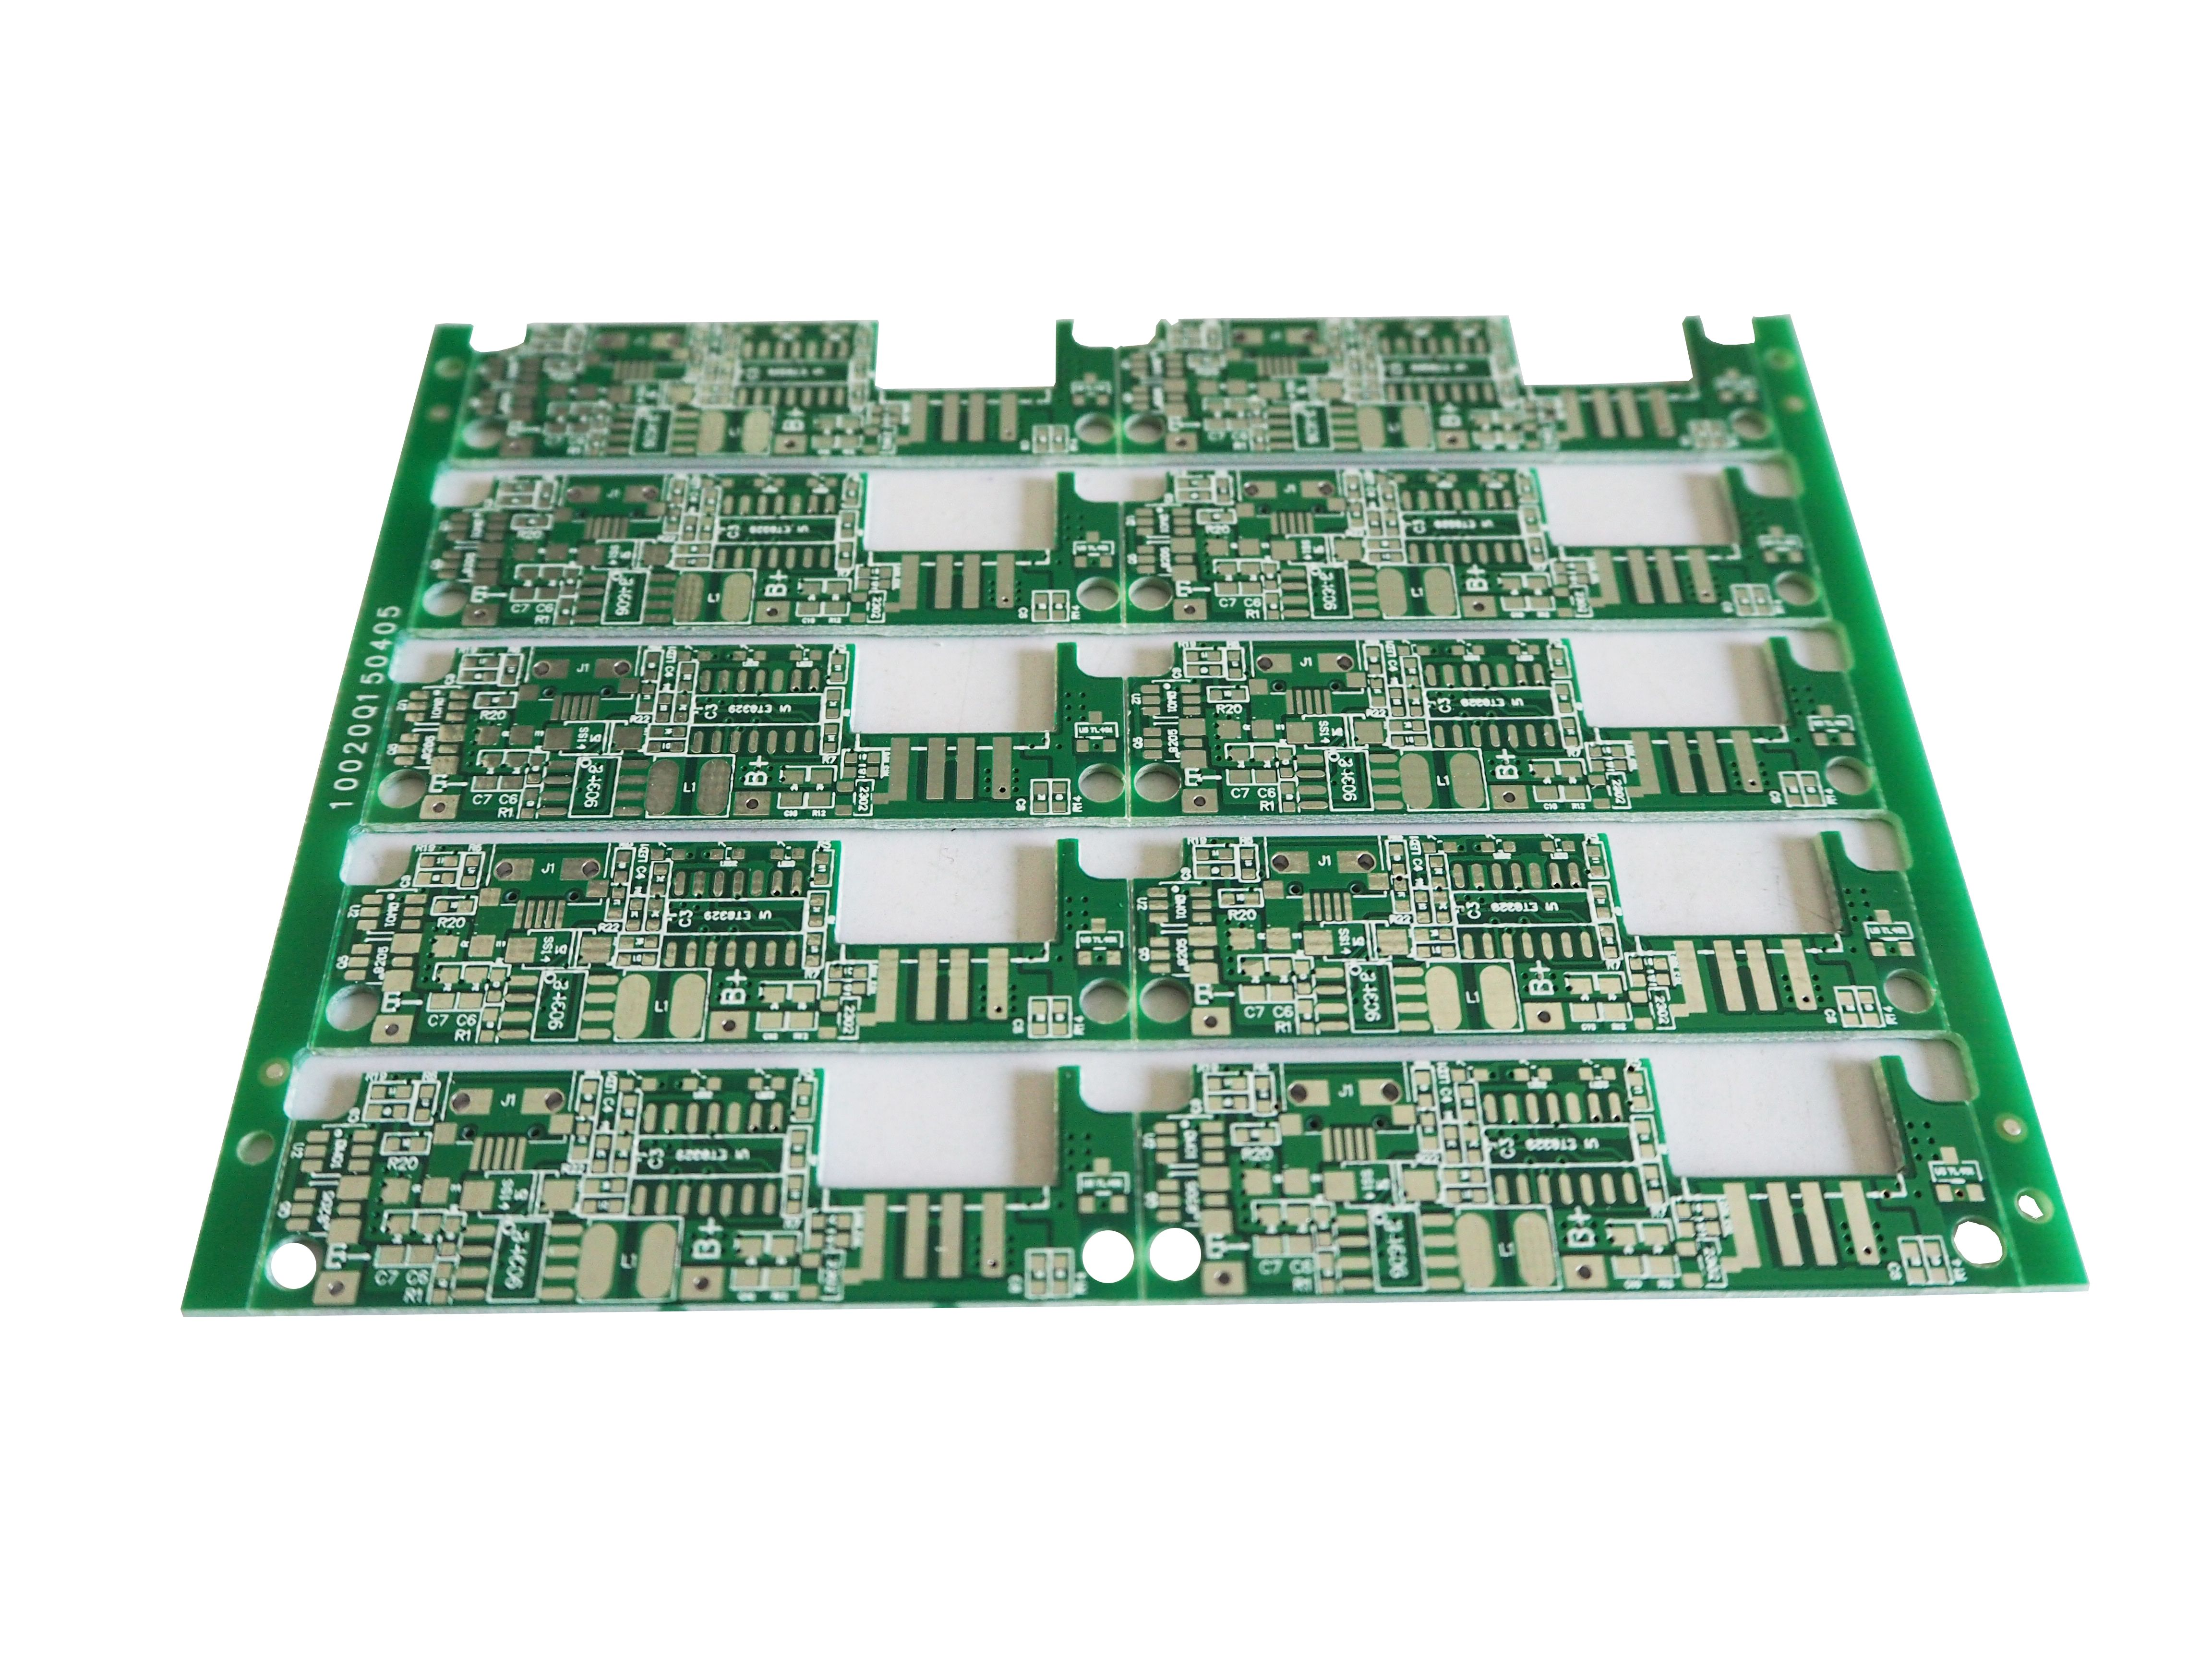 electronics manufacturing services, providing the highest quality